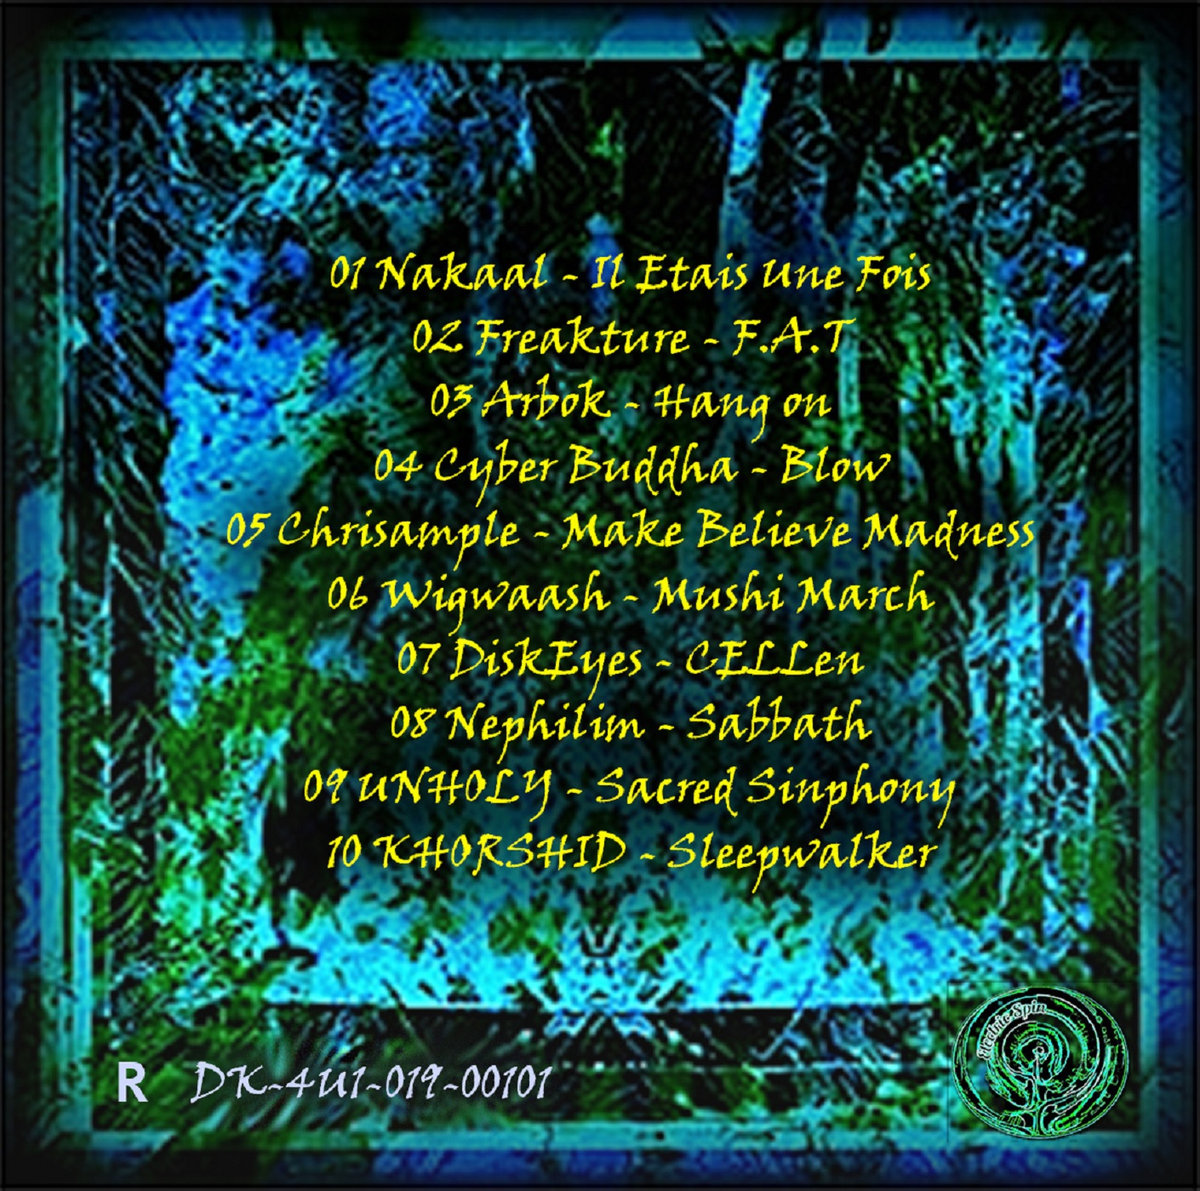 Twisted monster fairytale compiled by Teslacoil | Dj Teslacoil